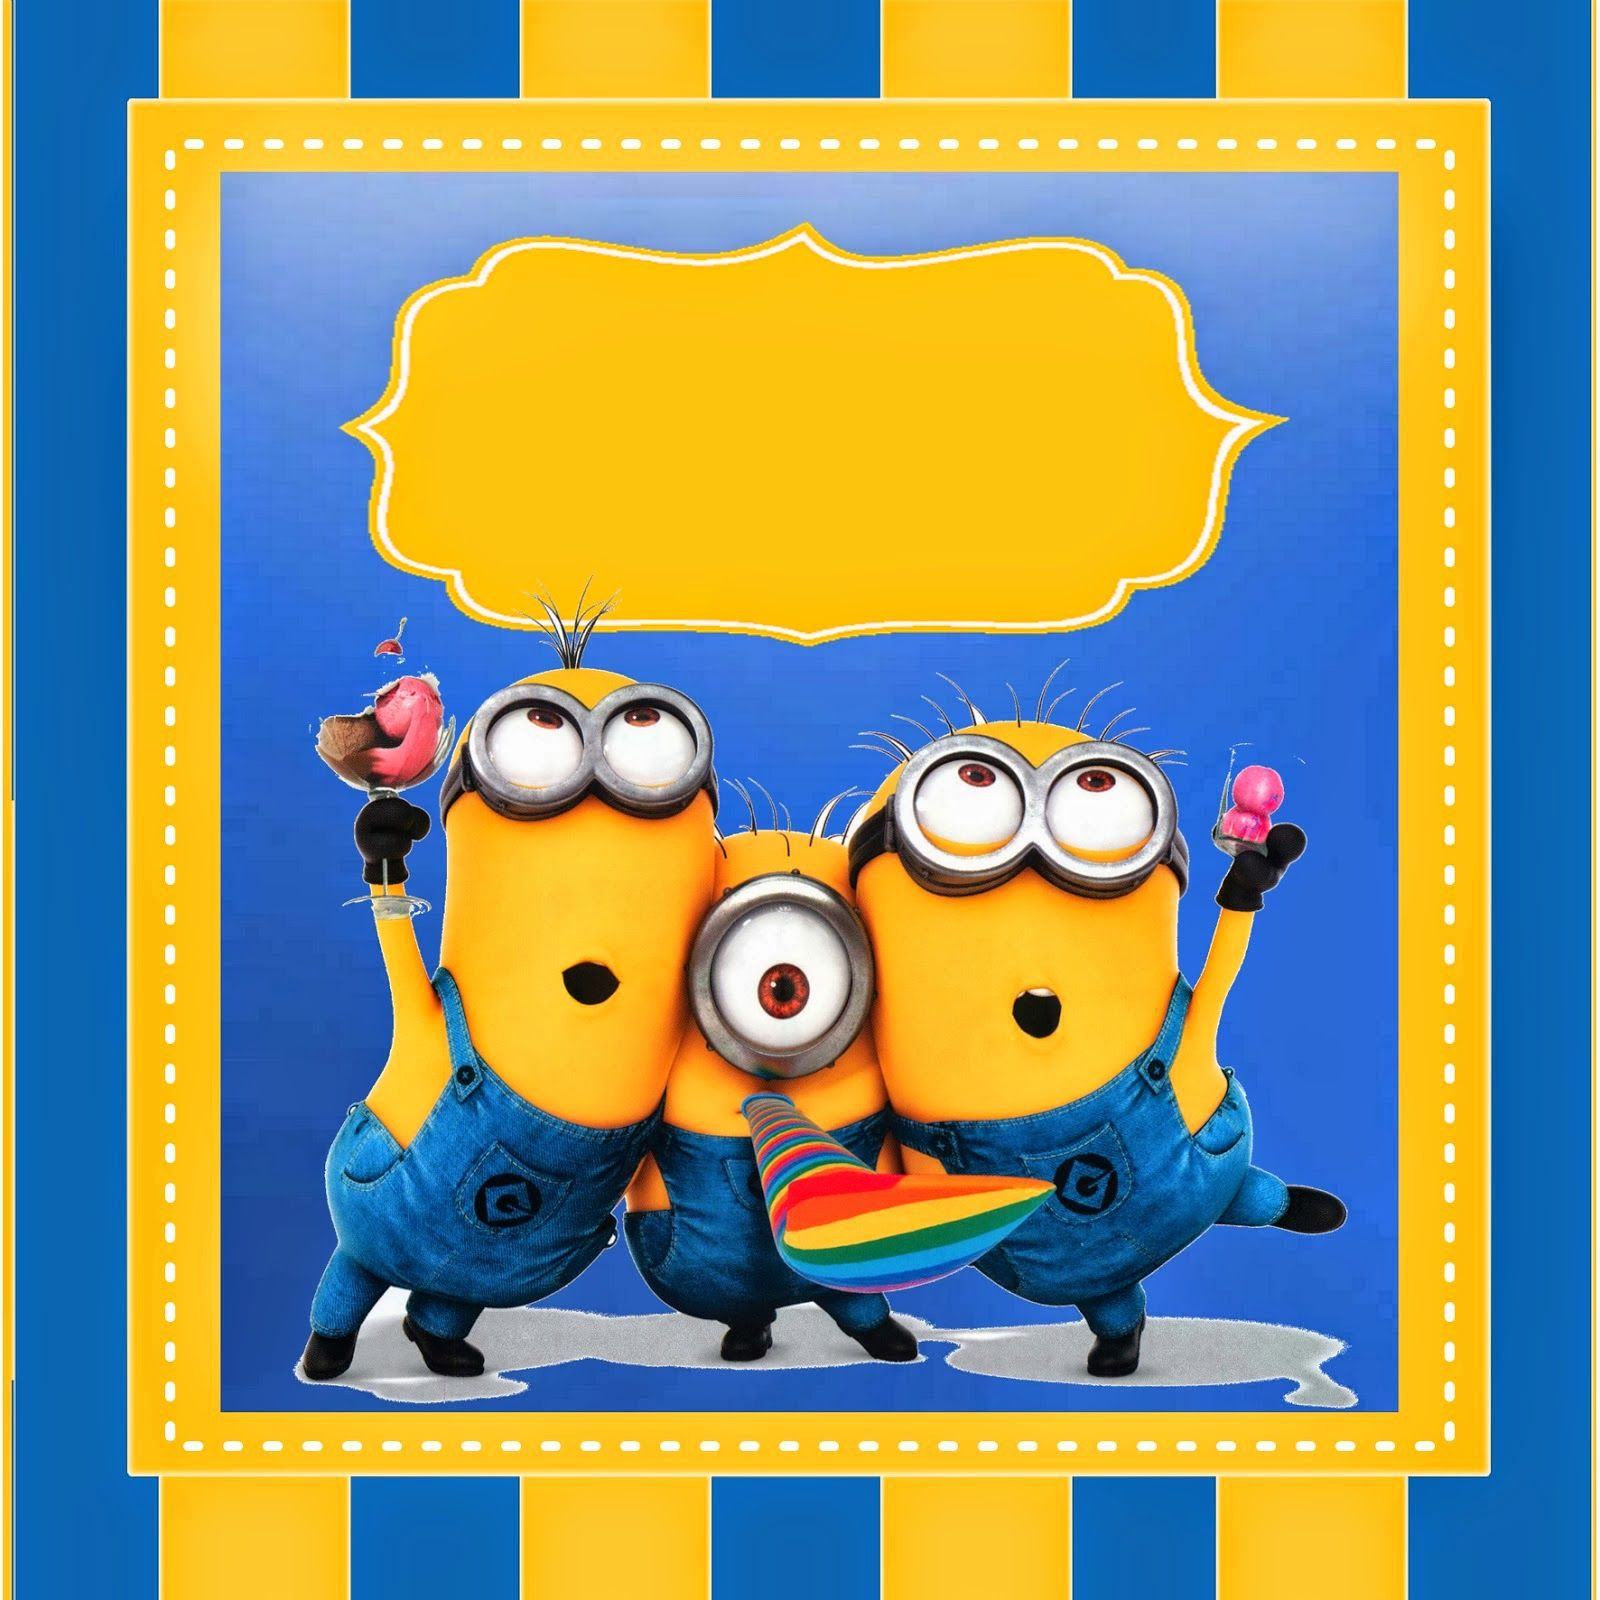 Despicable Me 2 Free Printable Kit. | Oh My Fiesta! in english ...